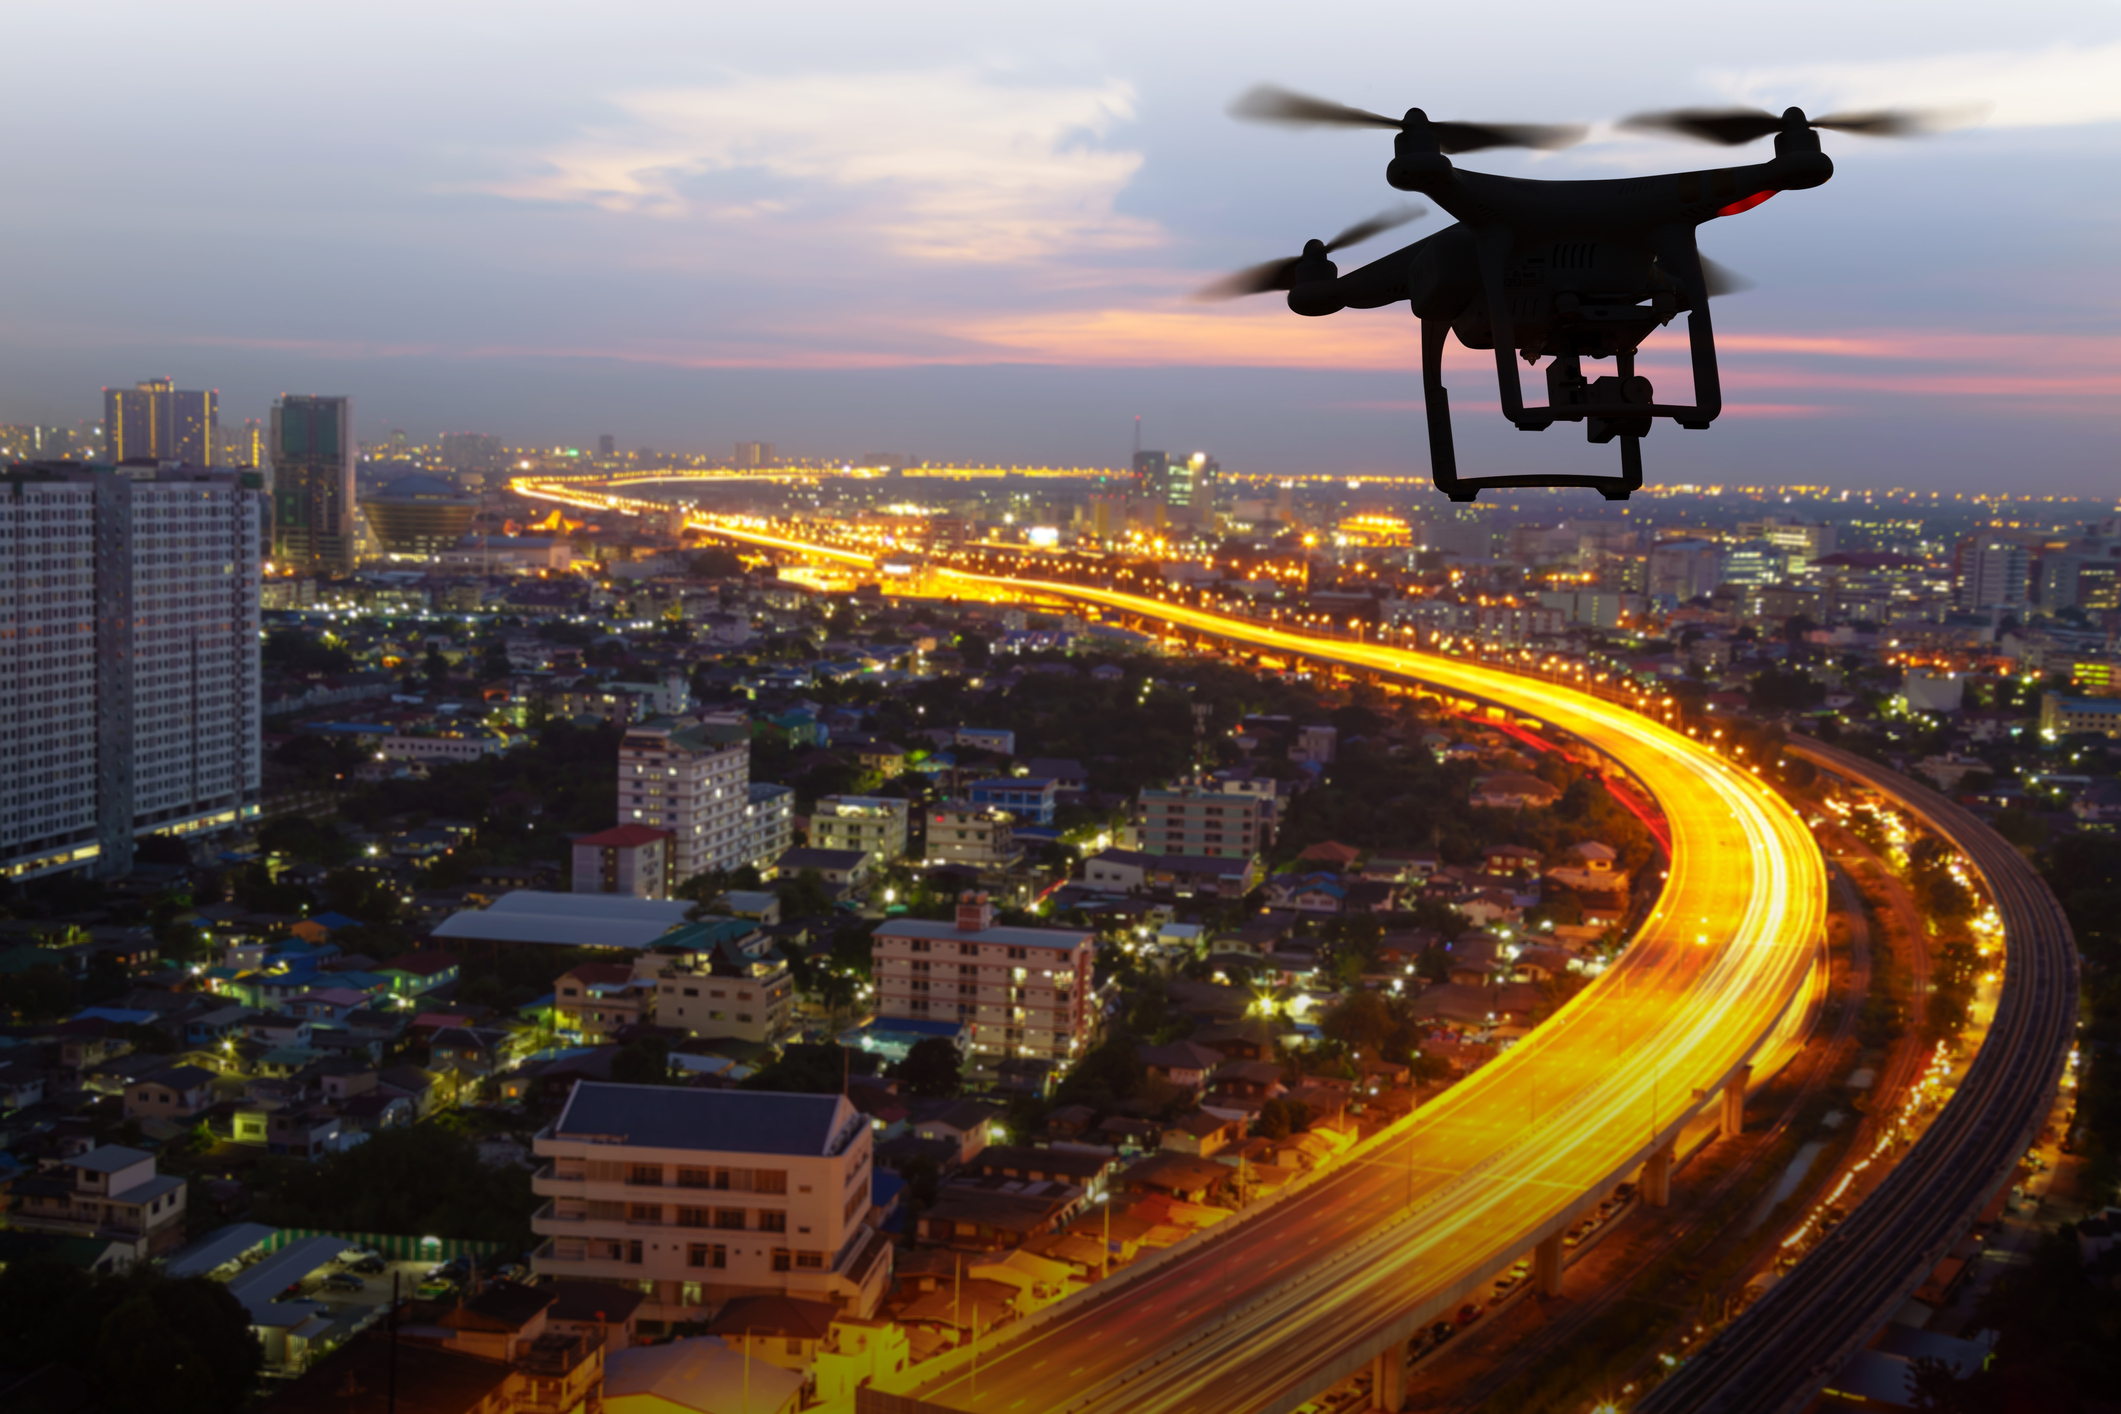 silhouette-of-drone-flying-above-city-at-sunsetjpg